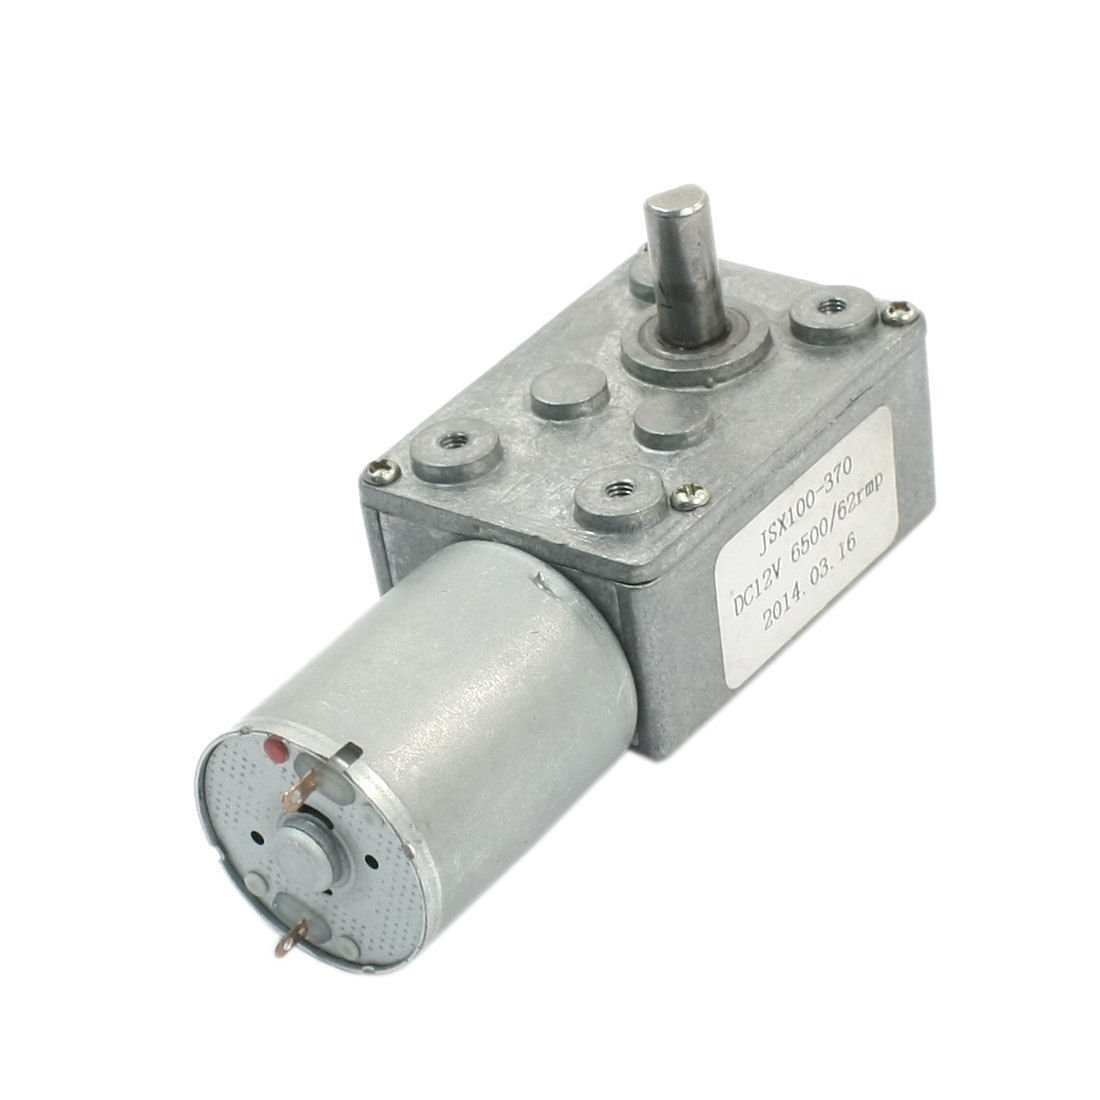 DC 12V Reduction Ratio 6500RPM/62RPM 2-Pin Worm Gear Motor